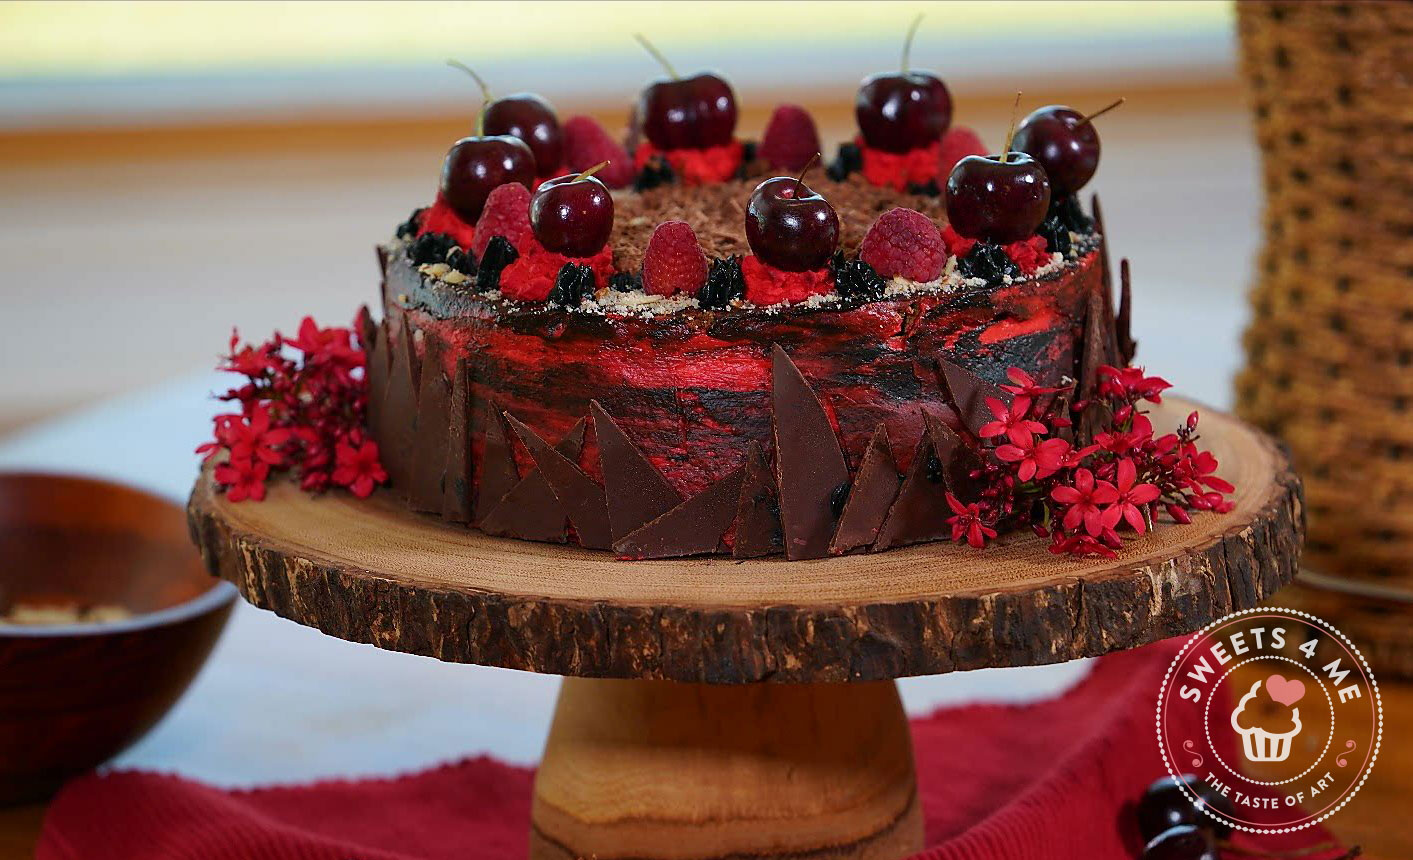 The most delicious cake